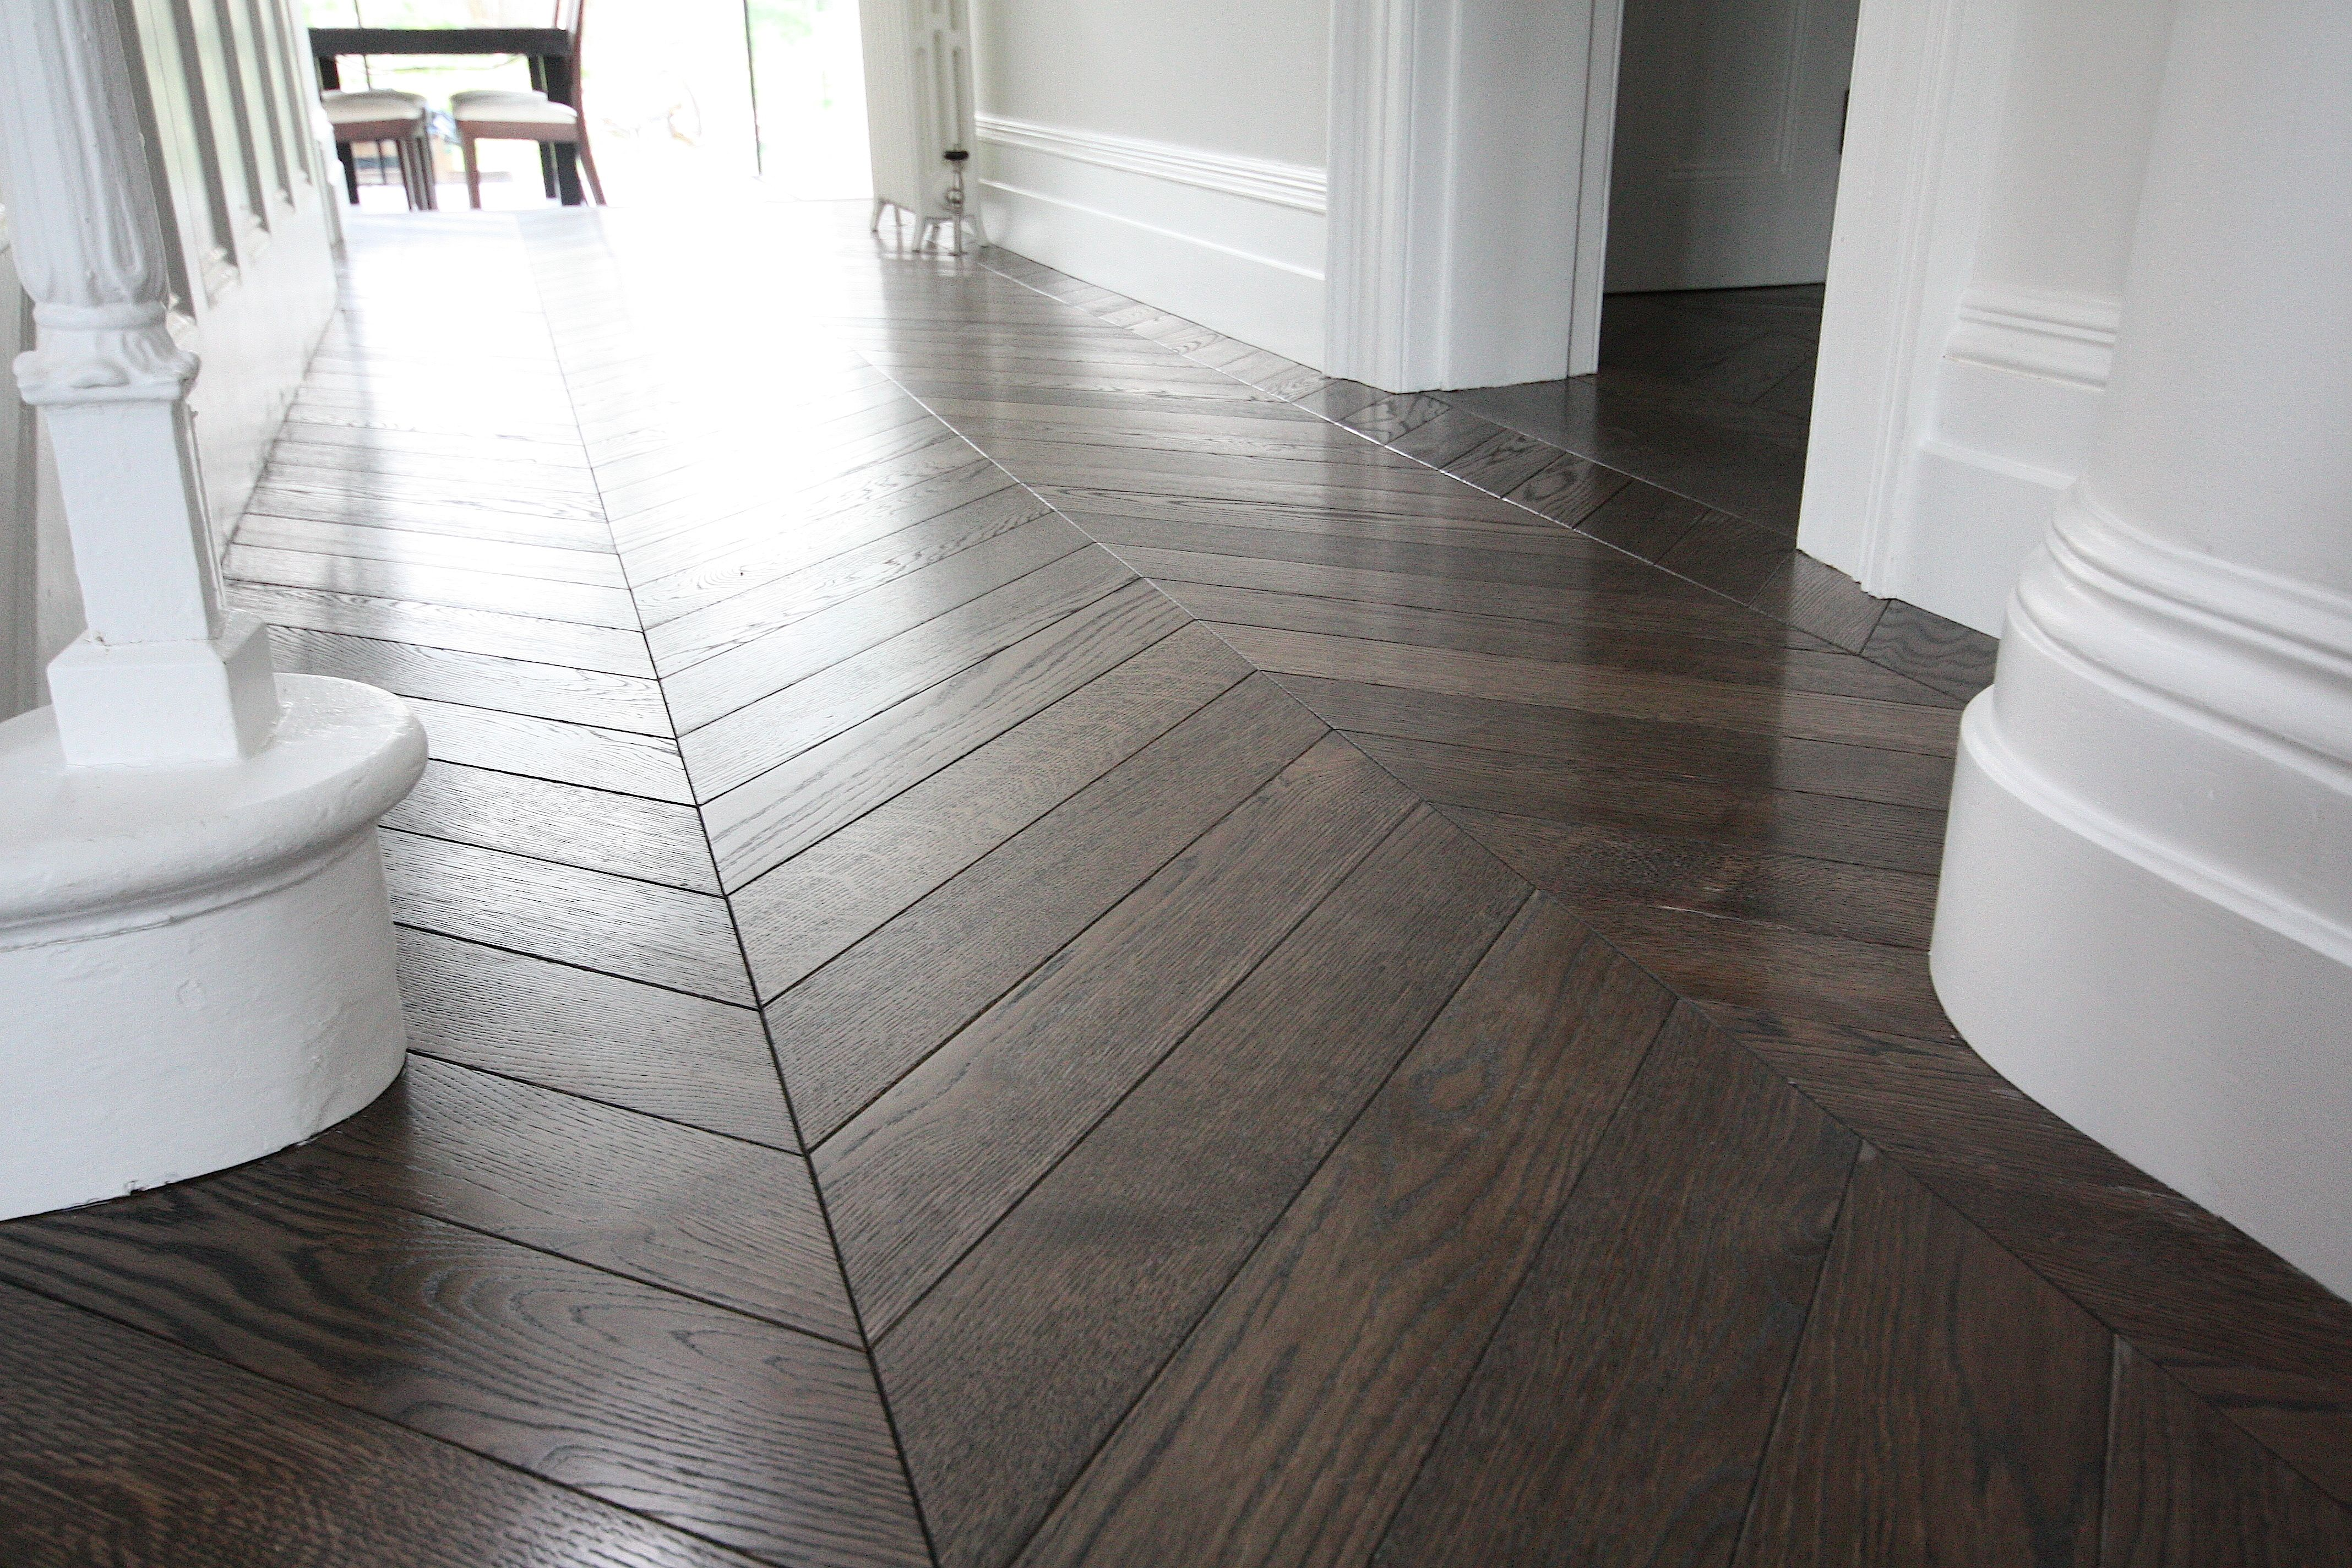 Chevron Timber Flooring With Border Google Search